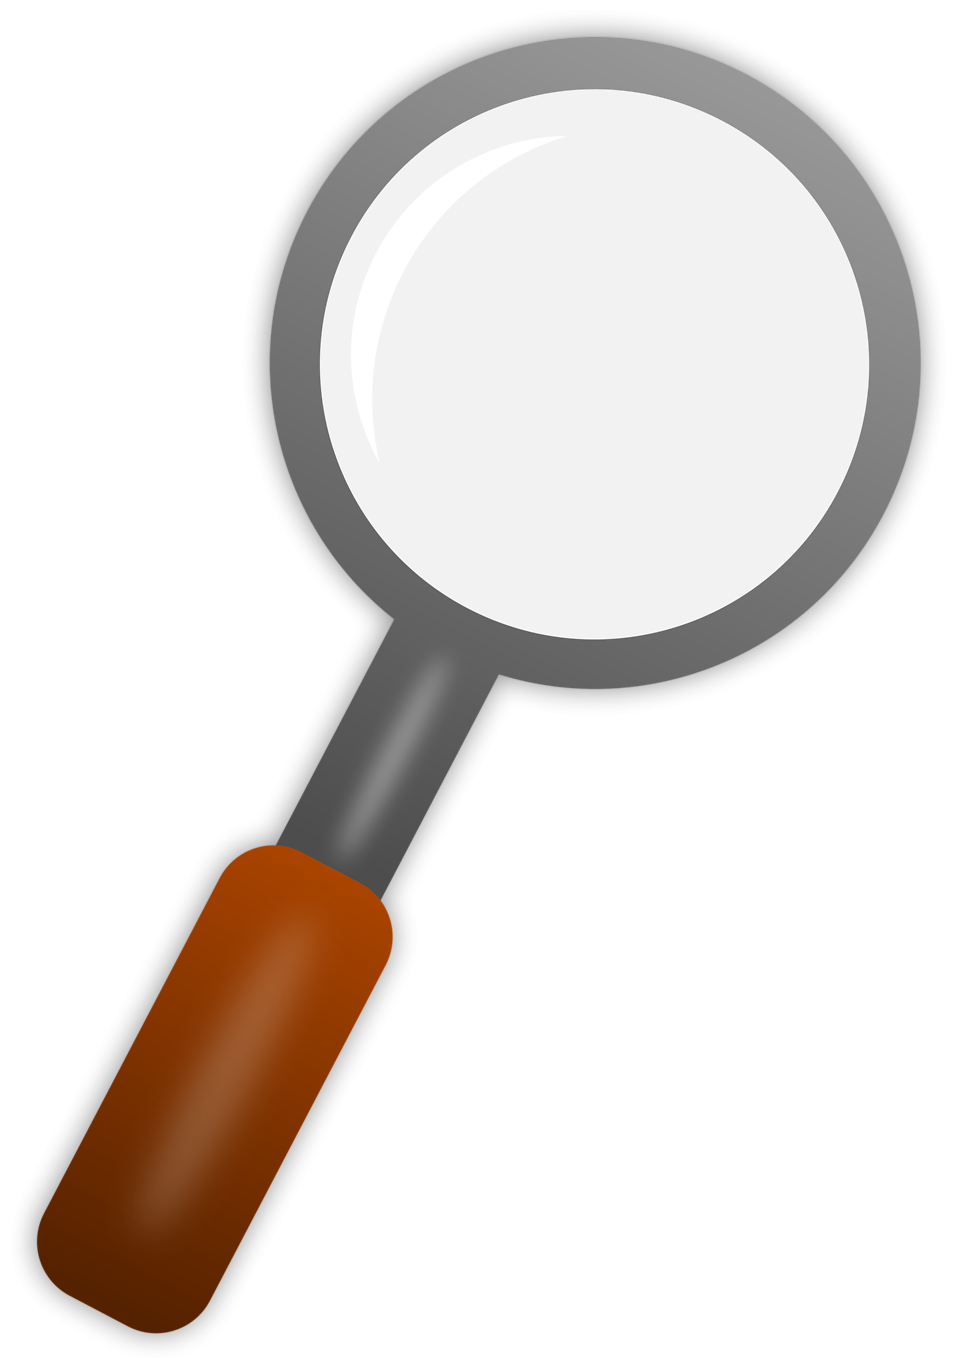 People clipart magnifying glass. Free stock photo illustration